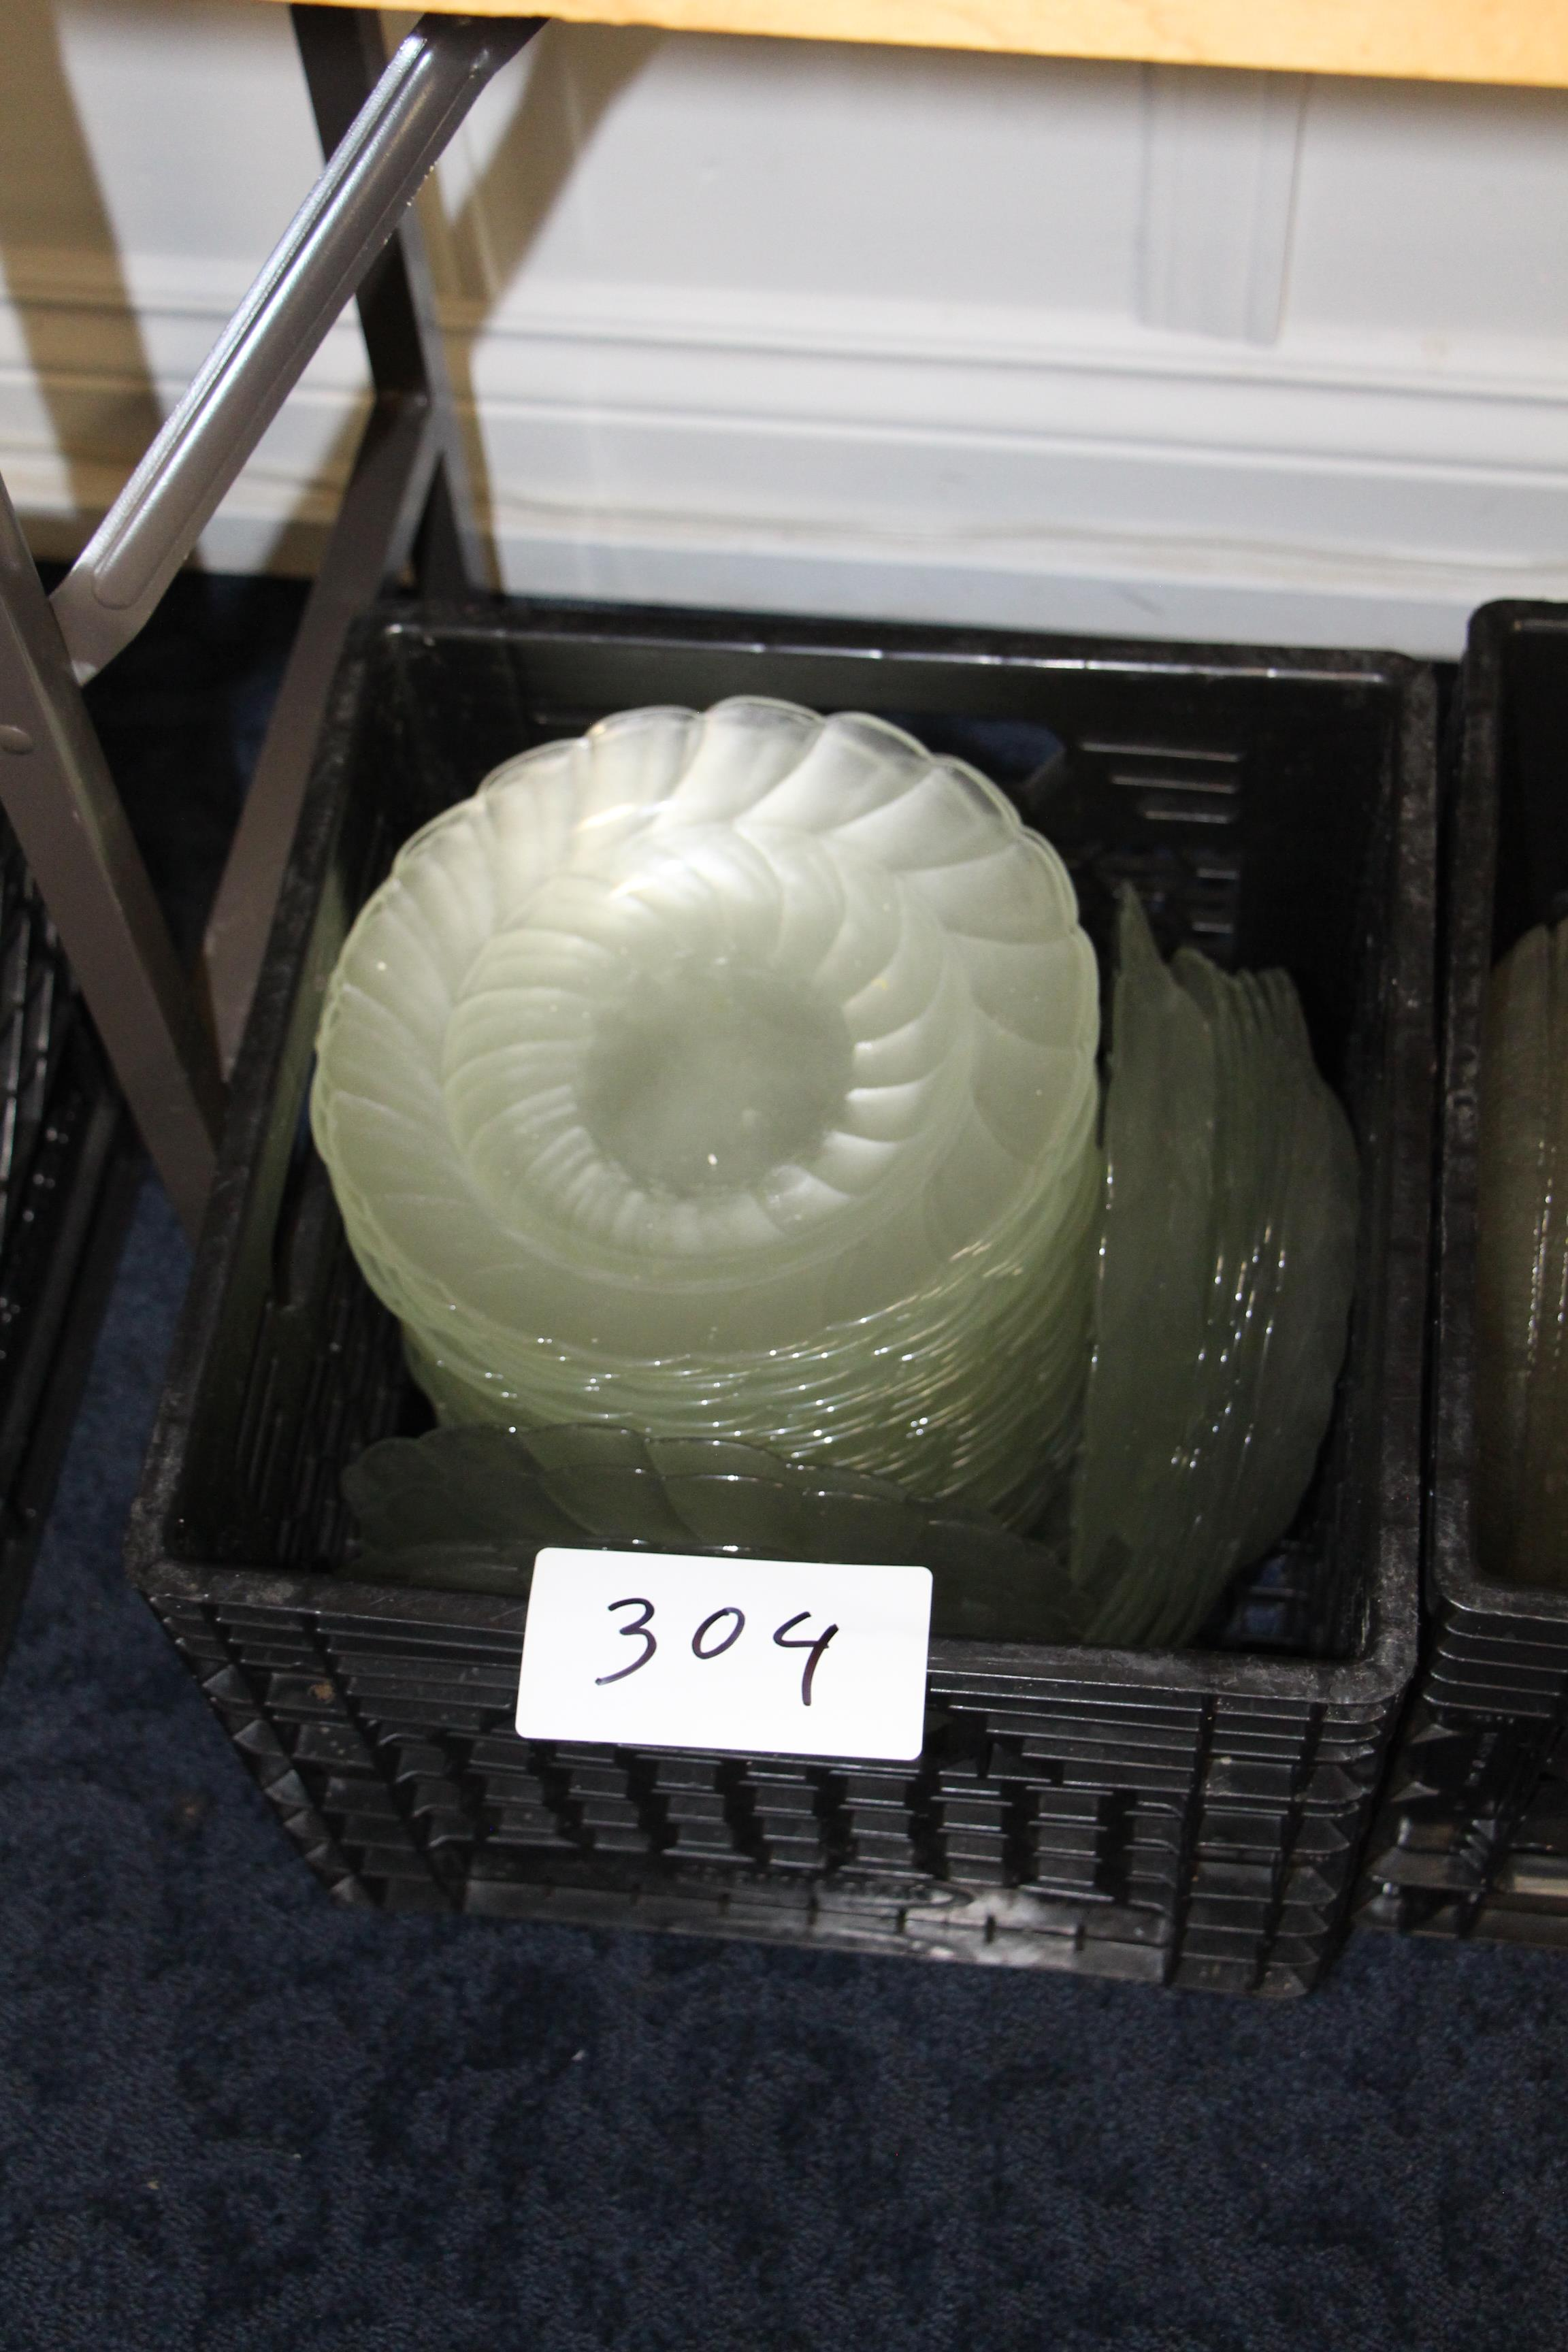 Lot 304 - Crate of glass desert/salad dishes